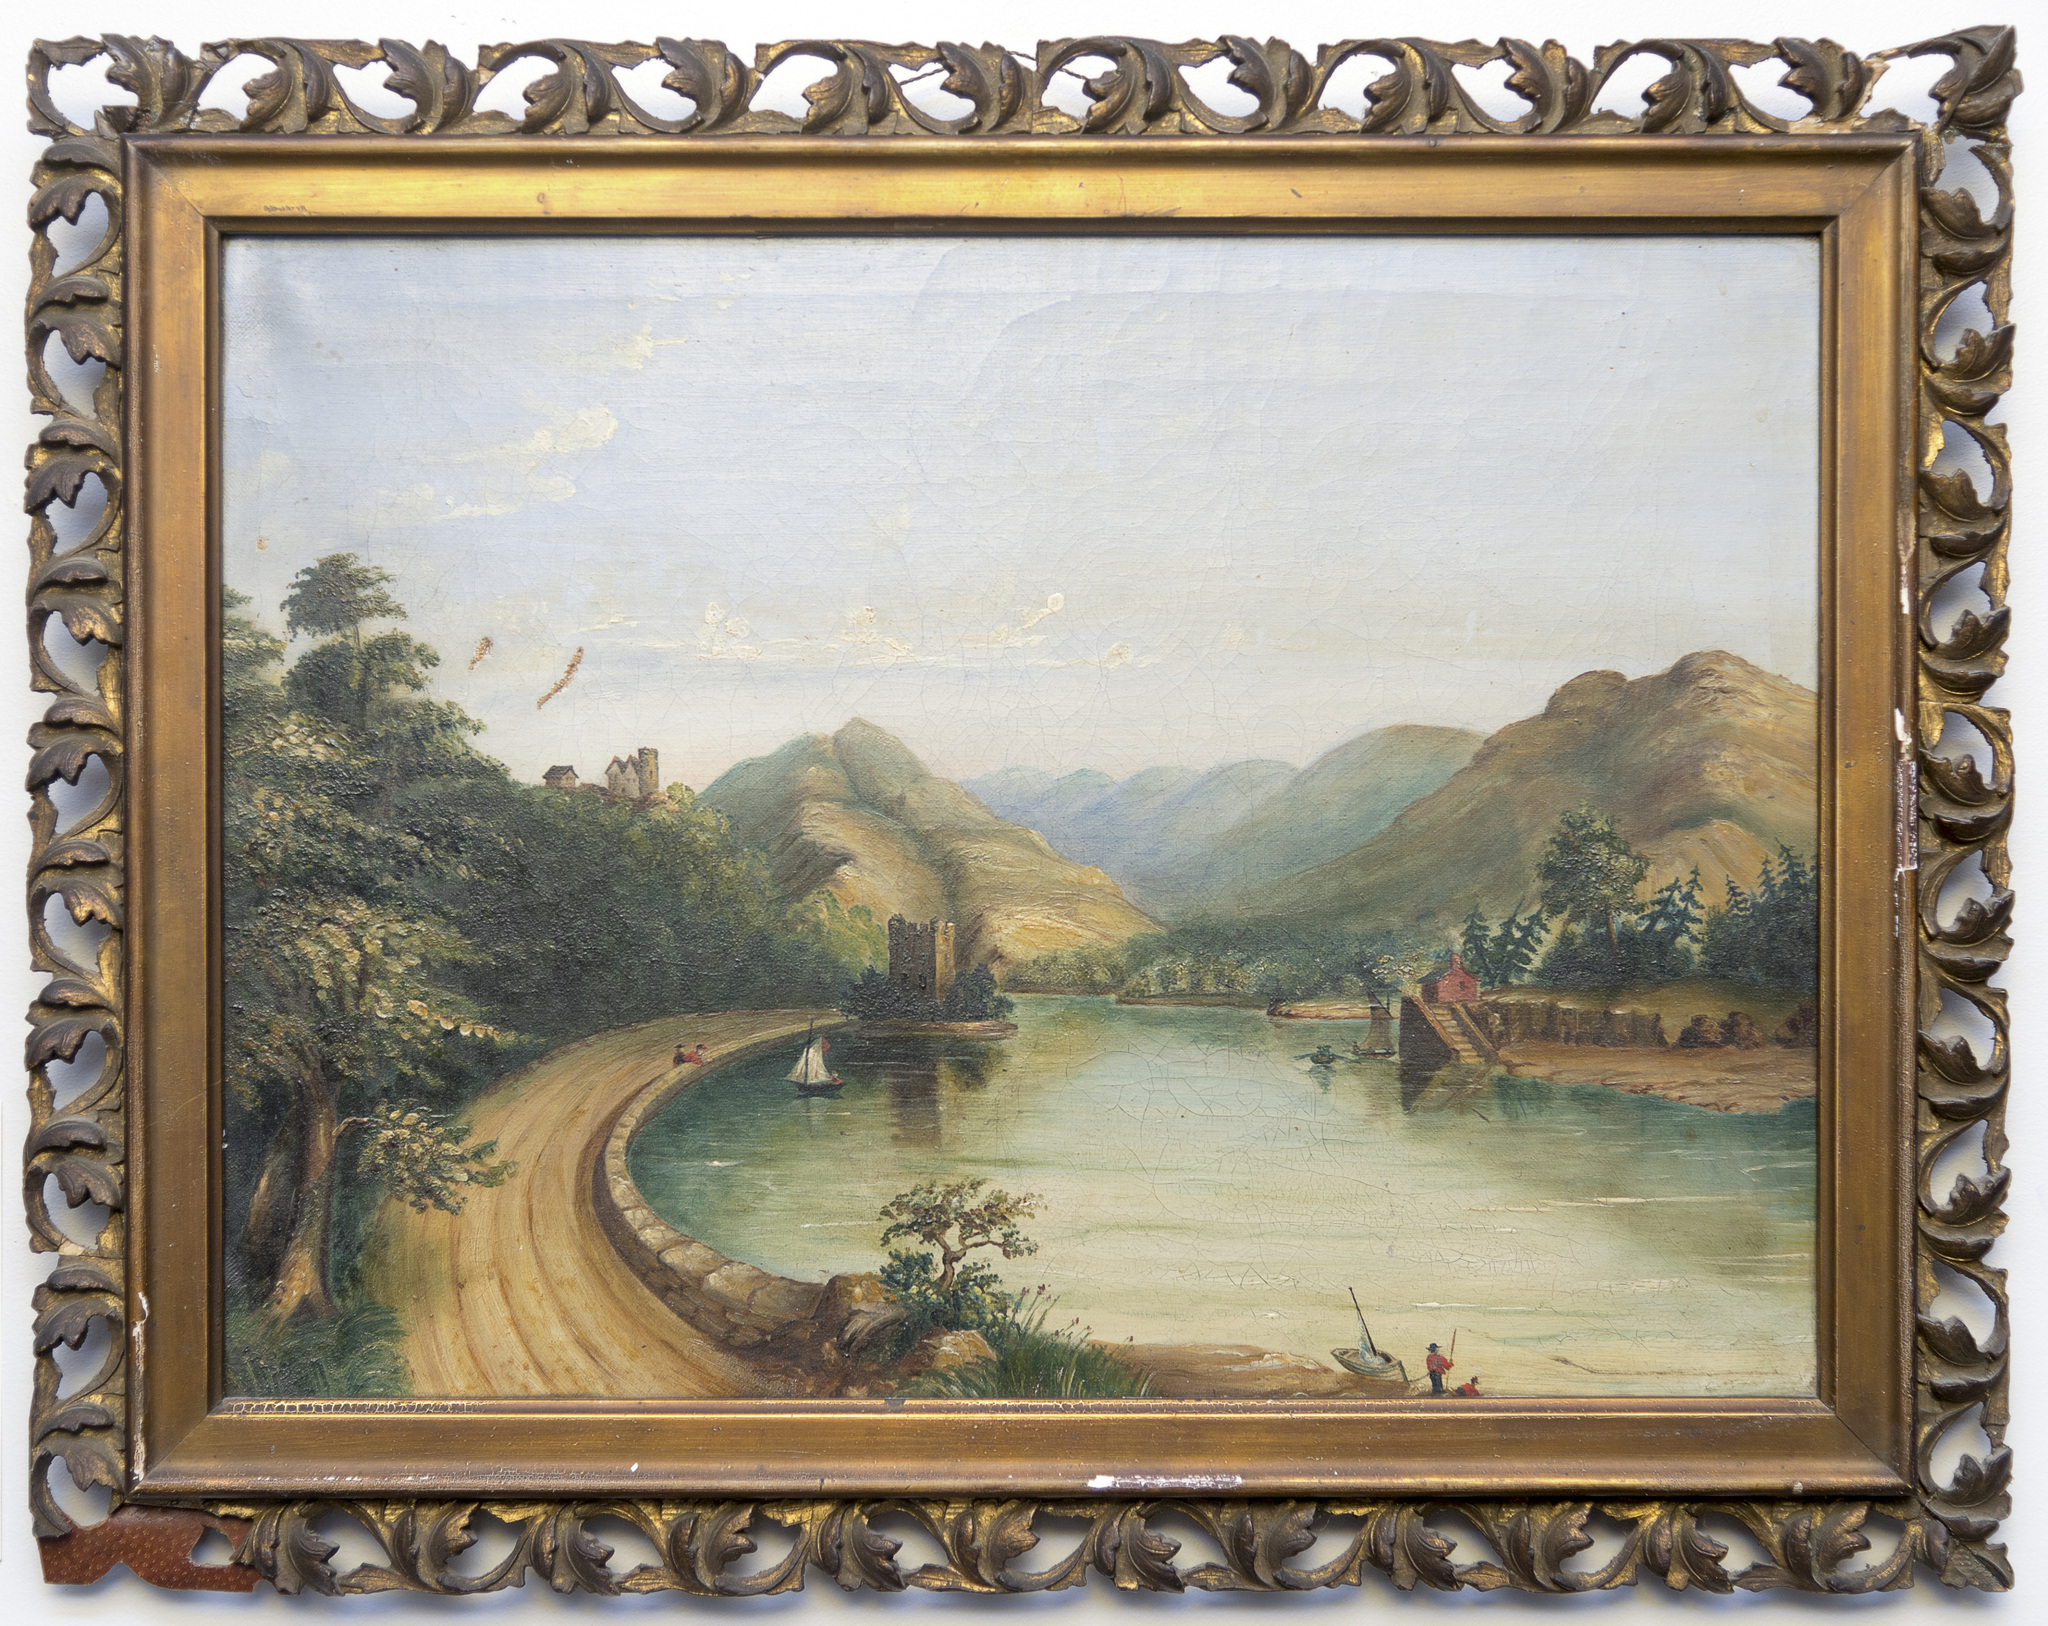 Image of framed riverside scene surrounded by hills, with sailboat and castle to the left of centreed